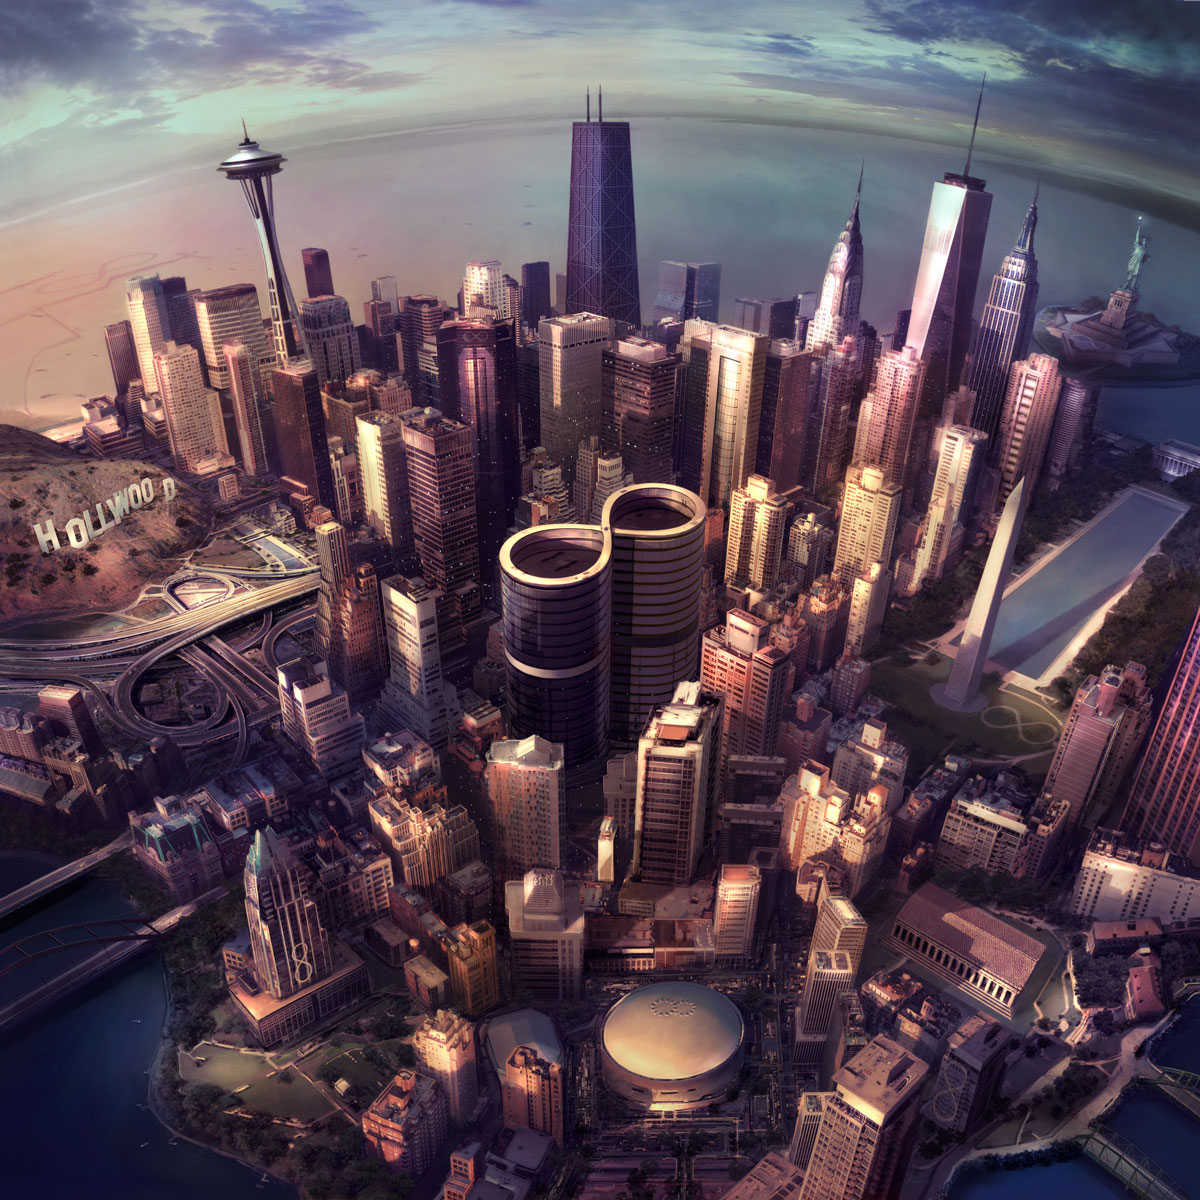 foo foghters - sonic highways